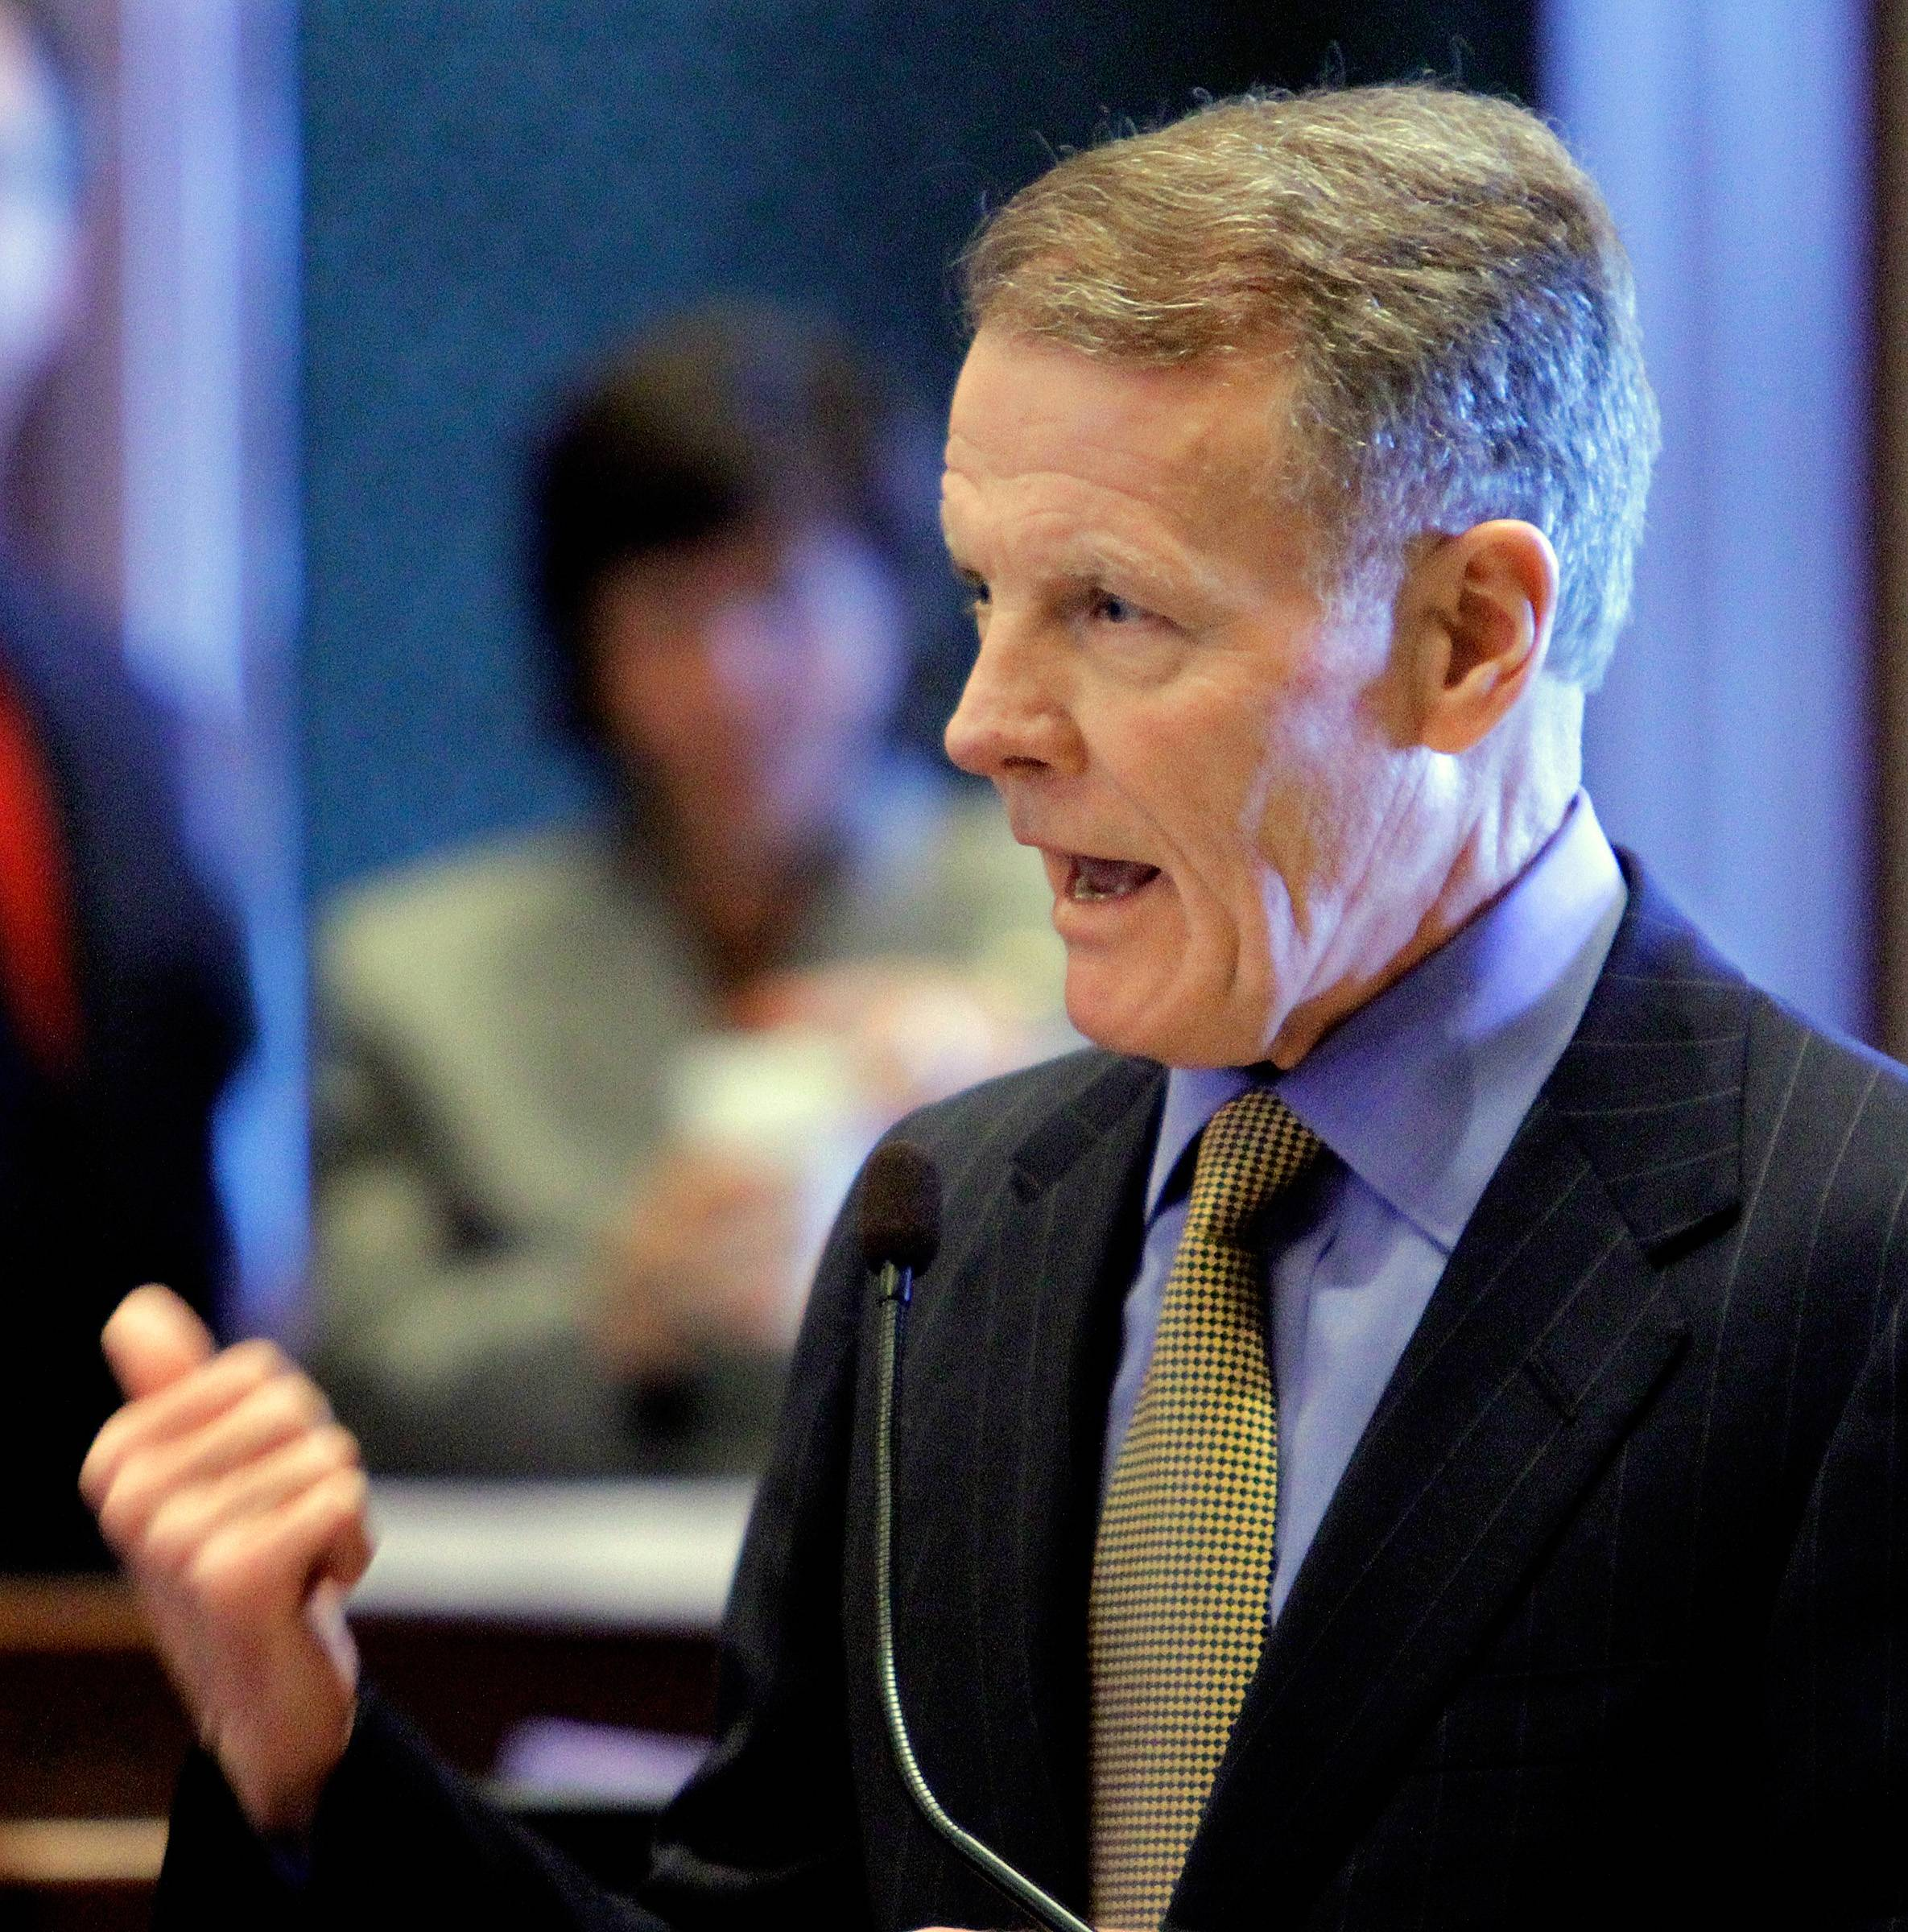 In this Feb, 8, 2011 photo, Illinois Speaker of the House Michael Madigan, a Chicago Democrat, warns lawmakers of tough decisions that lie ahead and even suggested cutting pension benefits for current state employees, a move generally considered unconstitutional, while on the House floor during session at the Illinois State Capitol in Springfield.